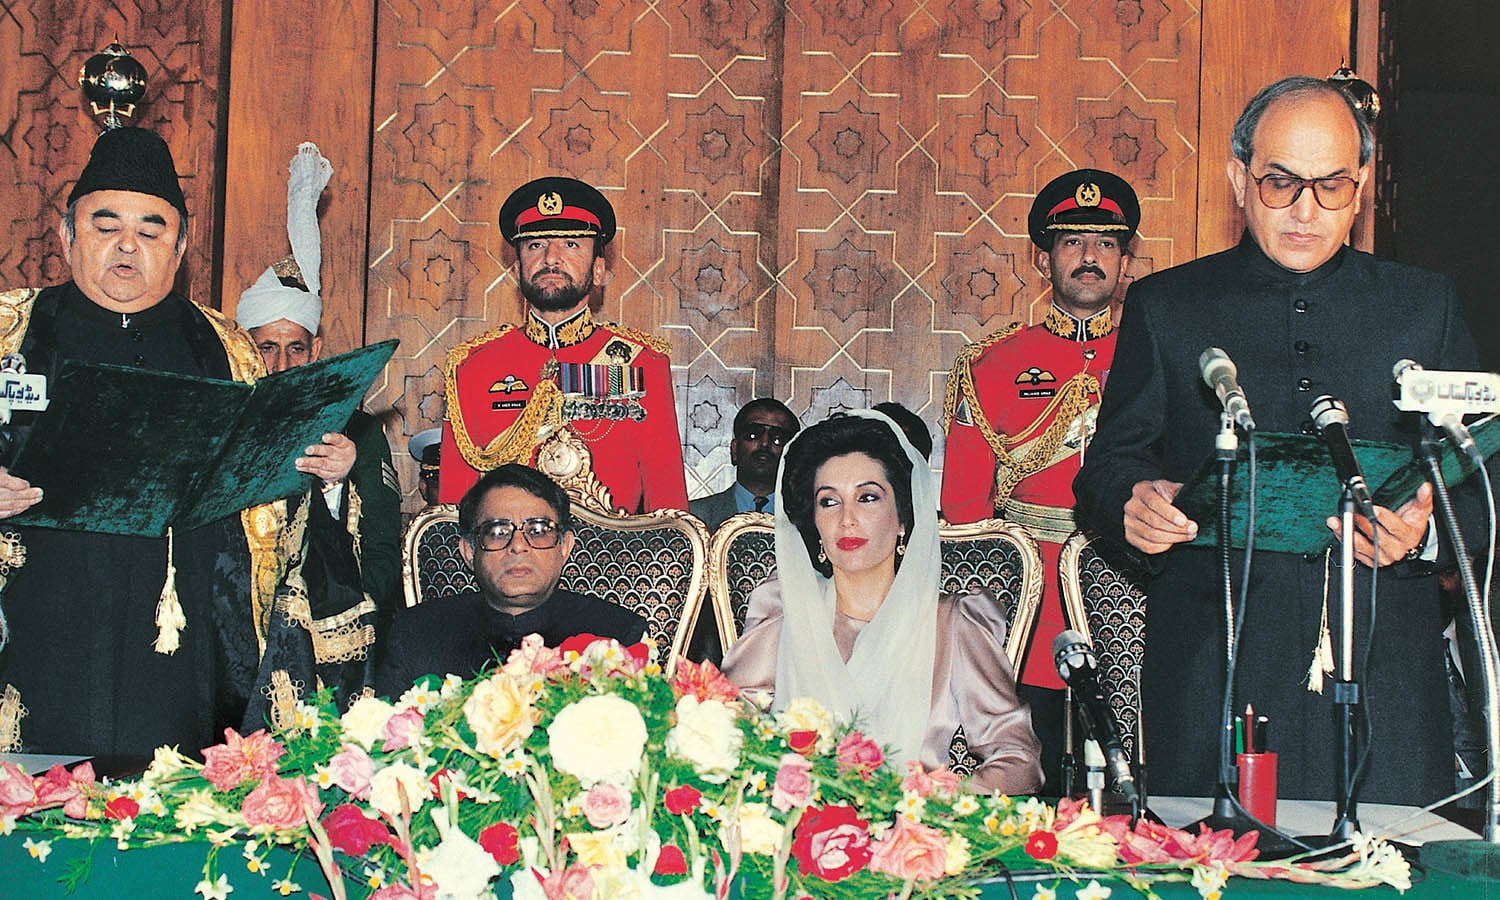 The day – November 13, 1993 – when Sardar Farooq Ahmed Khan Leghari (extreme right) took oath of the office of the country's president from Chief Justice Nasim Hassan Shah (extreme left) would have been a day of relief for Prime Minister Benazir Bhutto, seen here sitting alongside acting president Wasim Sajjad, for Leghari was her own nominee and that was critical in the presence of Article 58-2(B). A week short of three years later, the president dismissed her government using the same constitutional clause. The famed Shakespearean utterance, 'Et Tu, Brute?' must have crossed Benazir's mind at the time. Photo: Dawn / White Star Archives